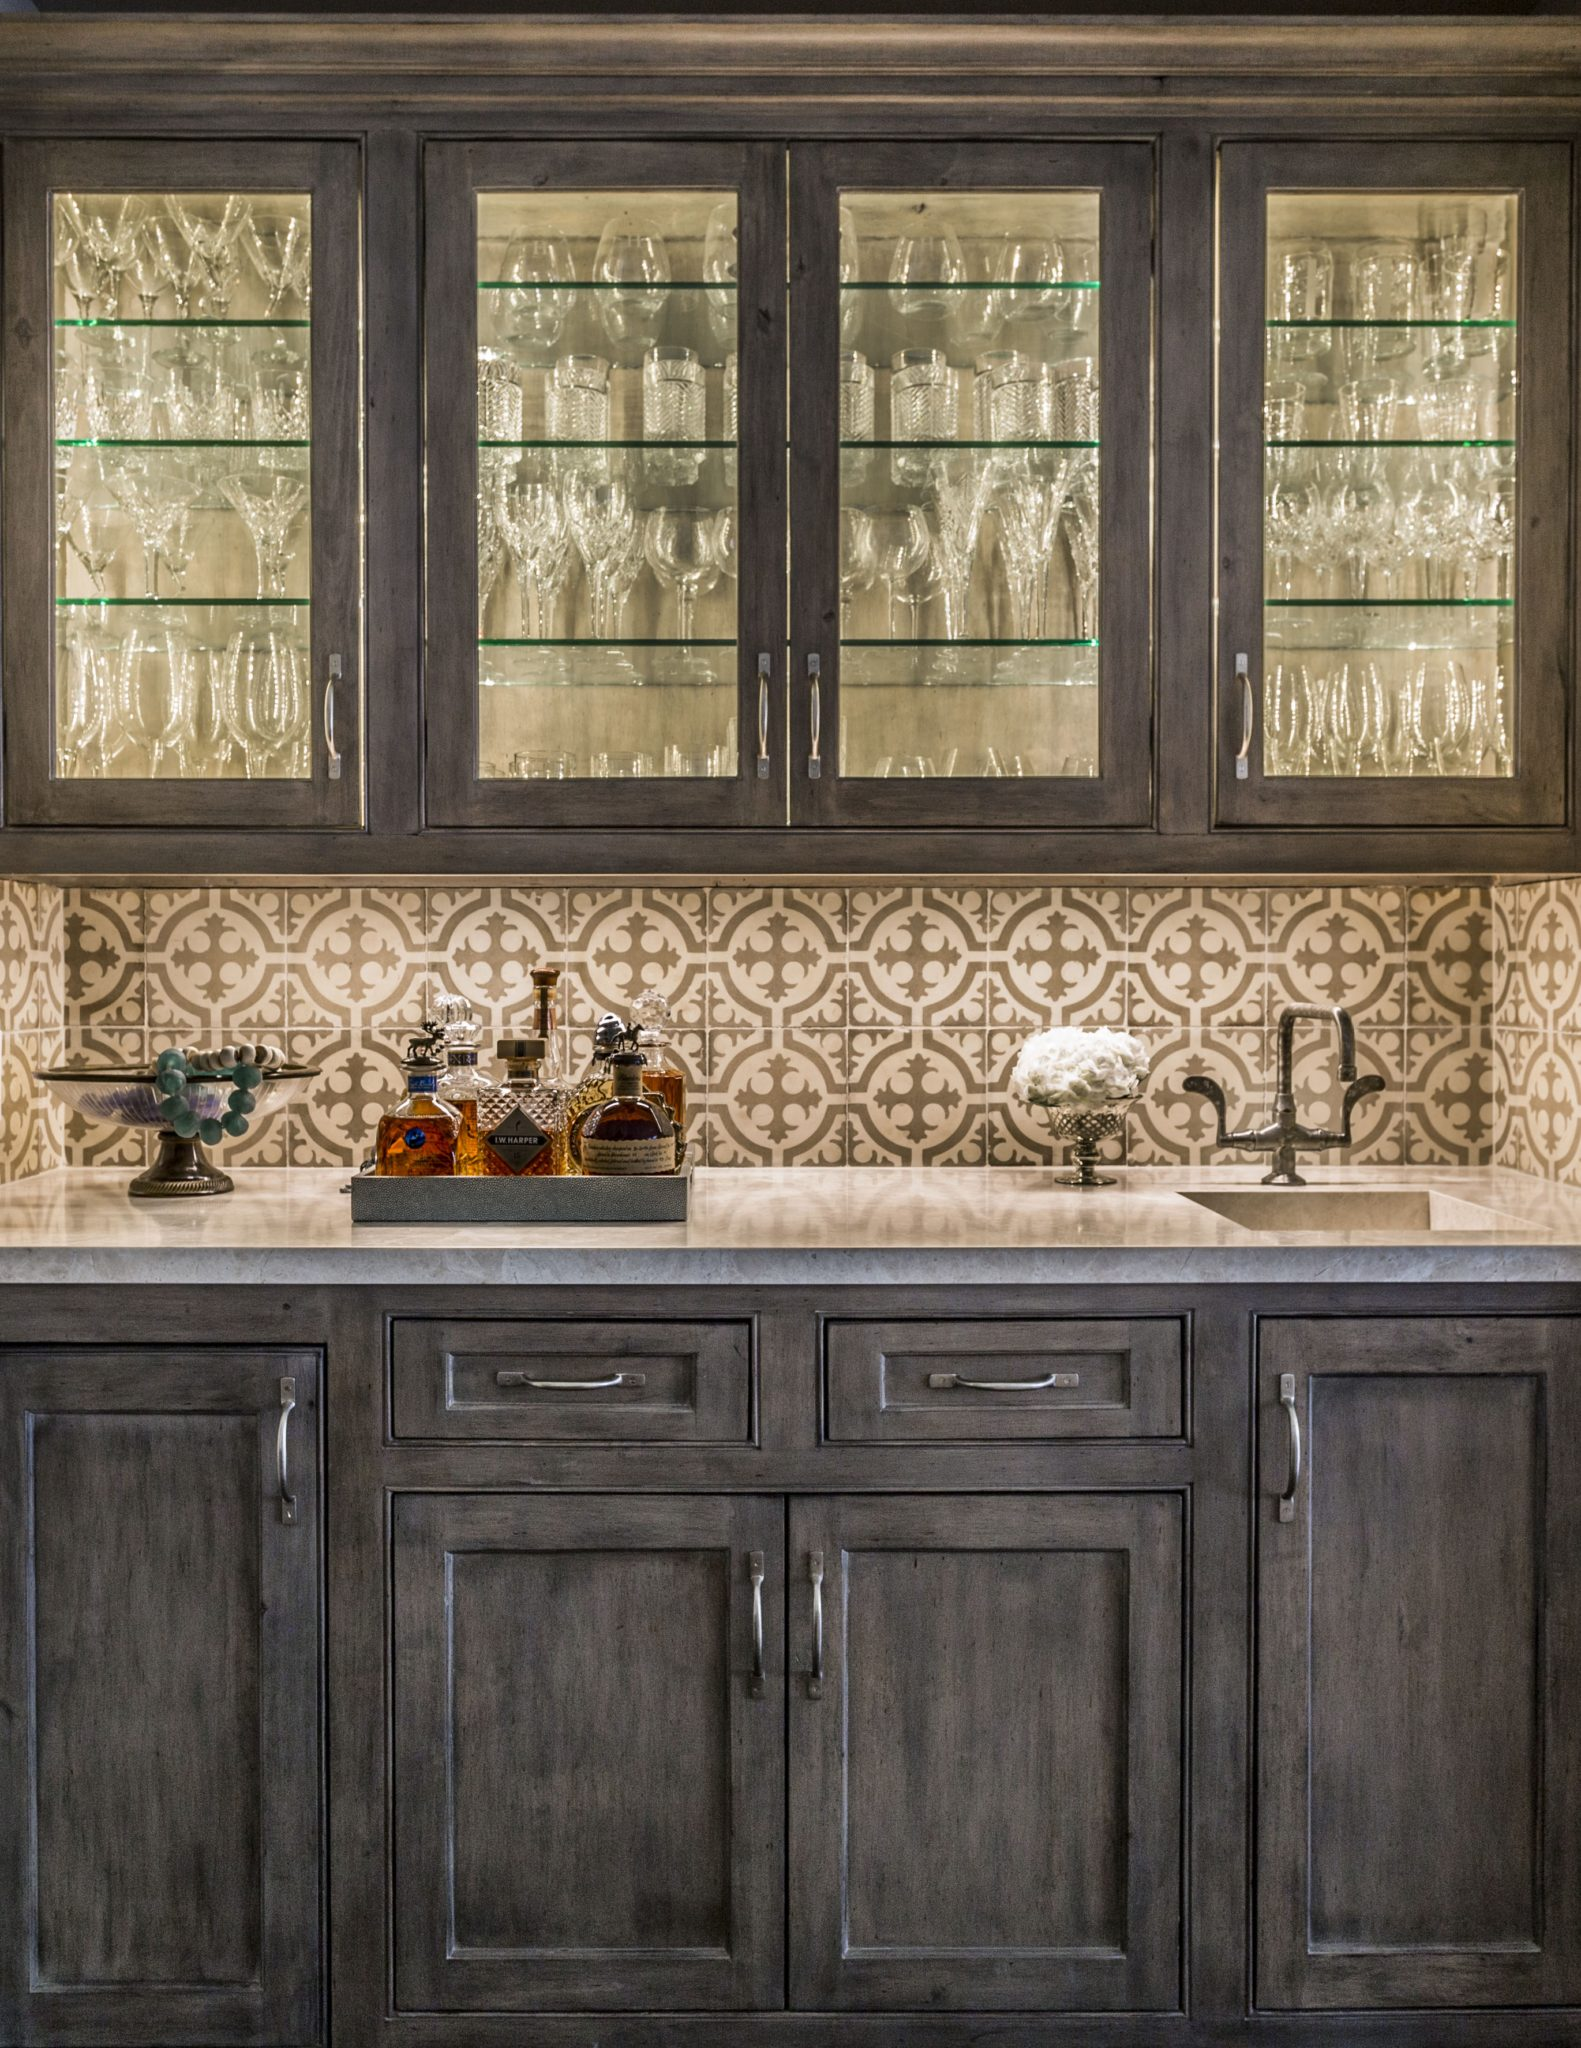 Briargrove Houston Bar With Chateau Domingue Tile Backsplash by Cindy Witmer Designs